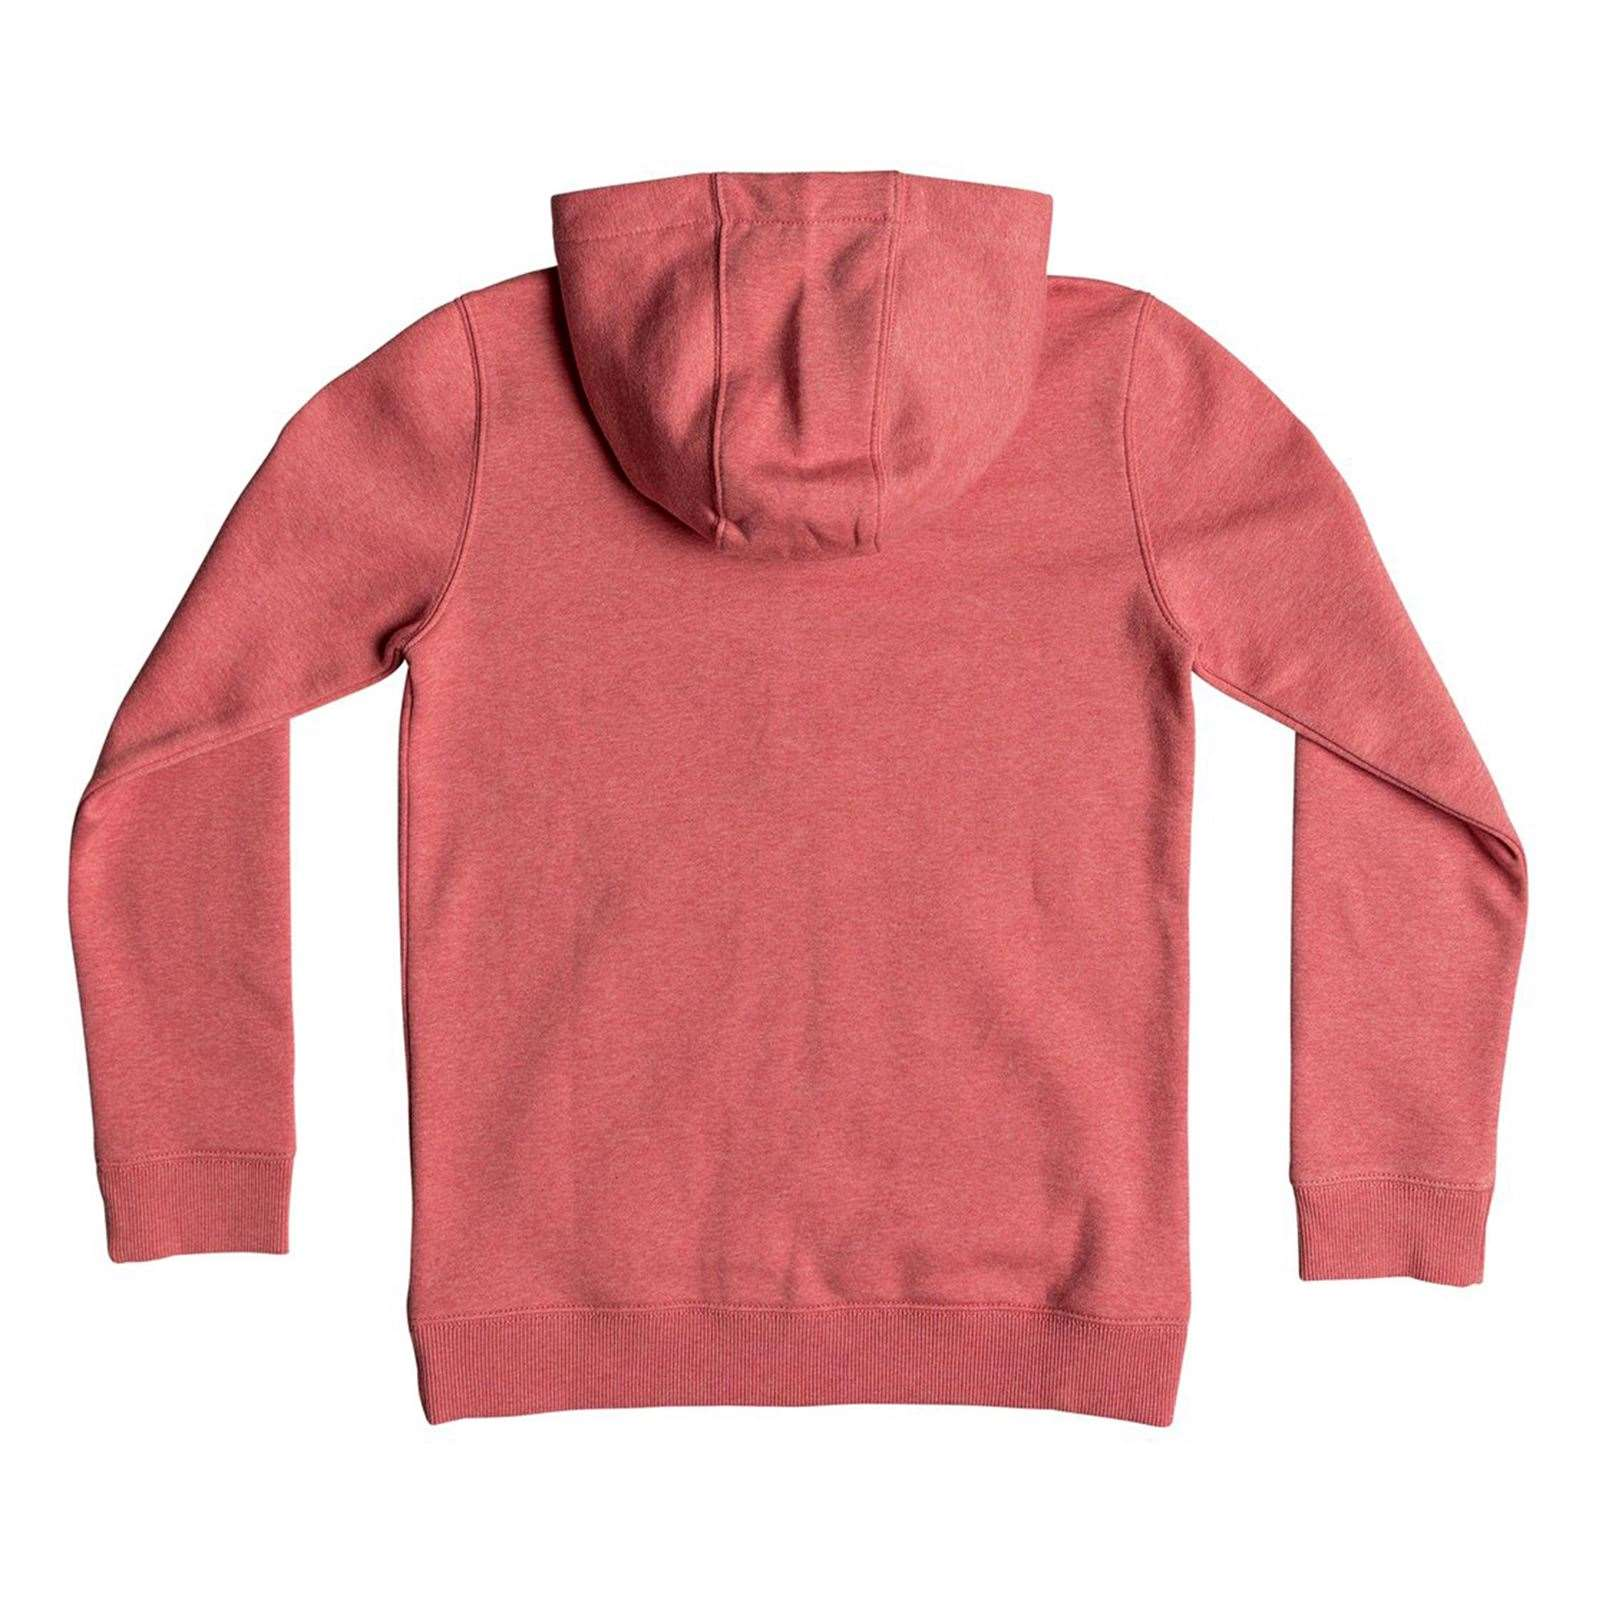 Quiksilver Summer 66 - Sweat à capuche - rose   BrandAlley 764b620f72d2